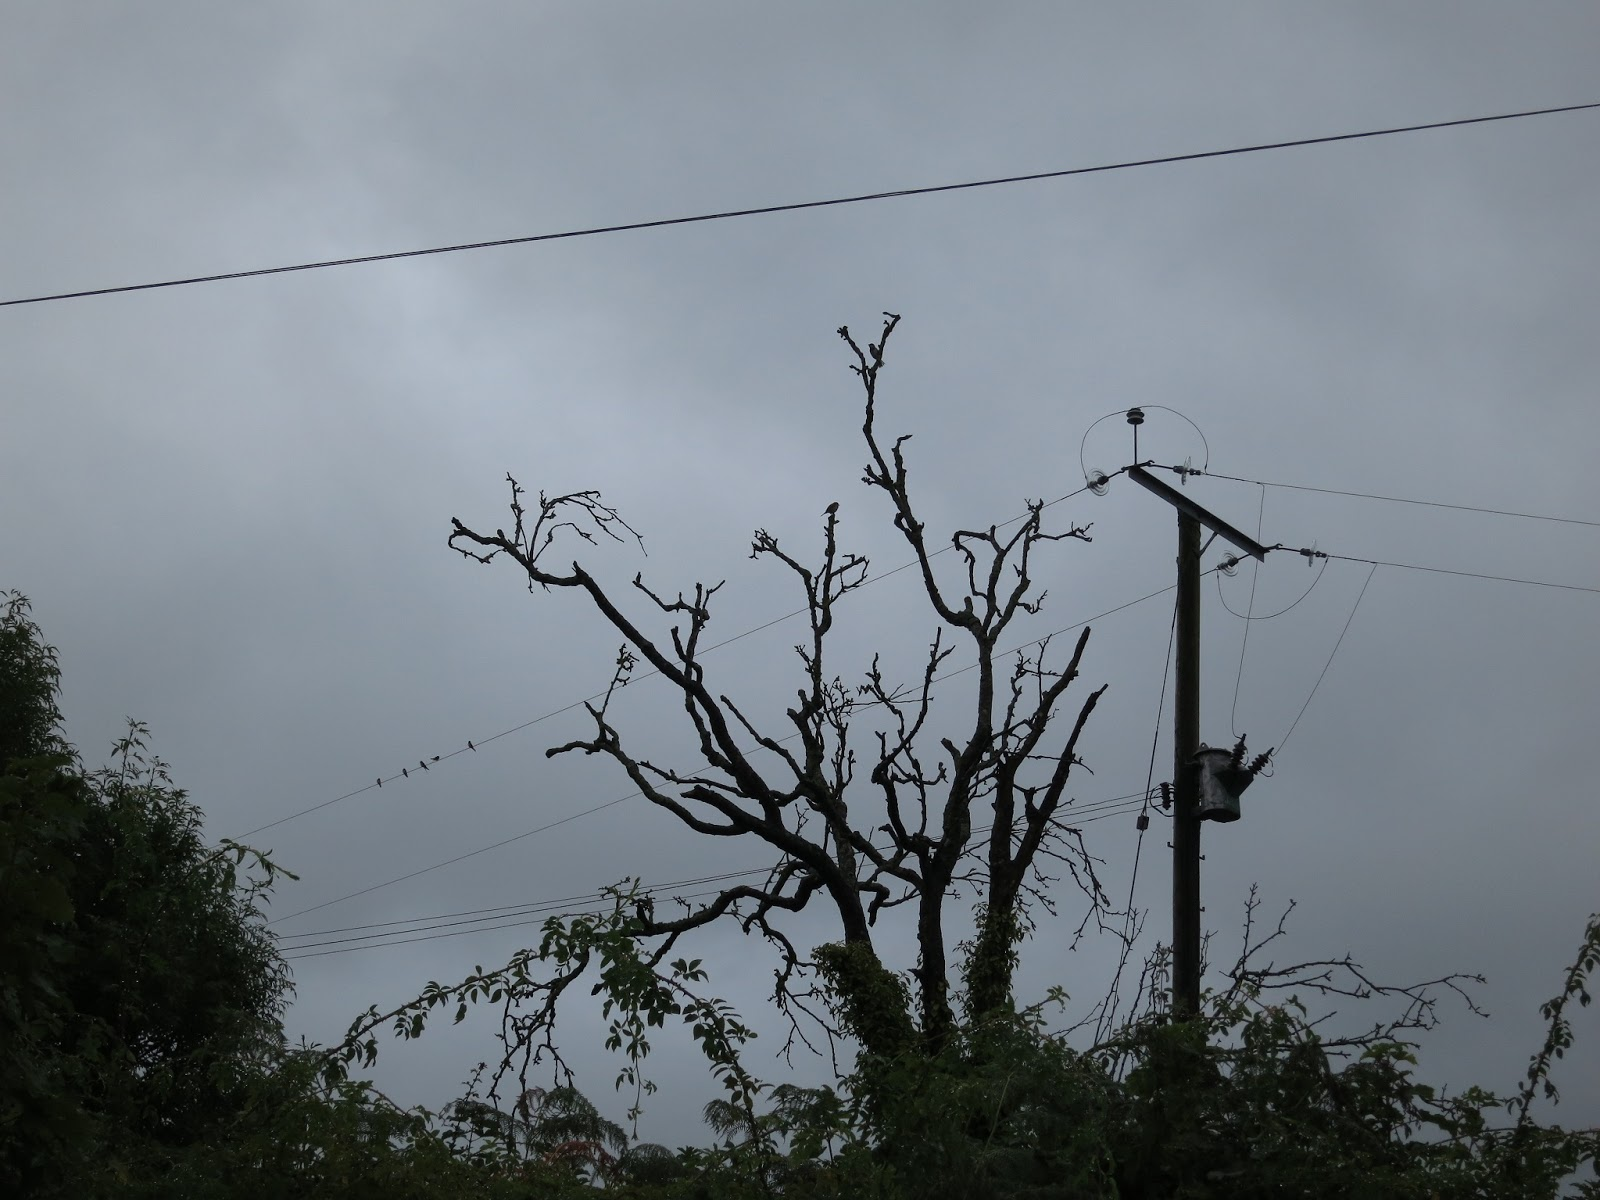 Silhouette of dead tree, telegraph pole and swifts sitting on a wire